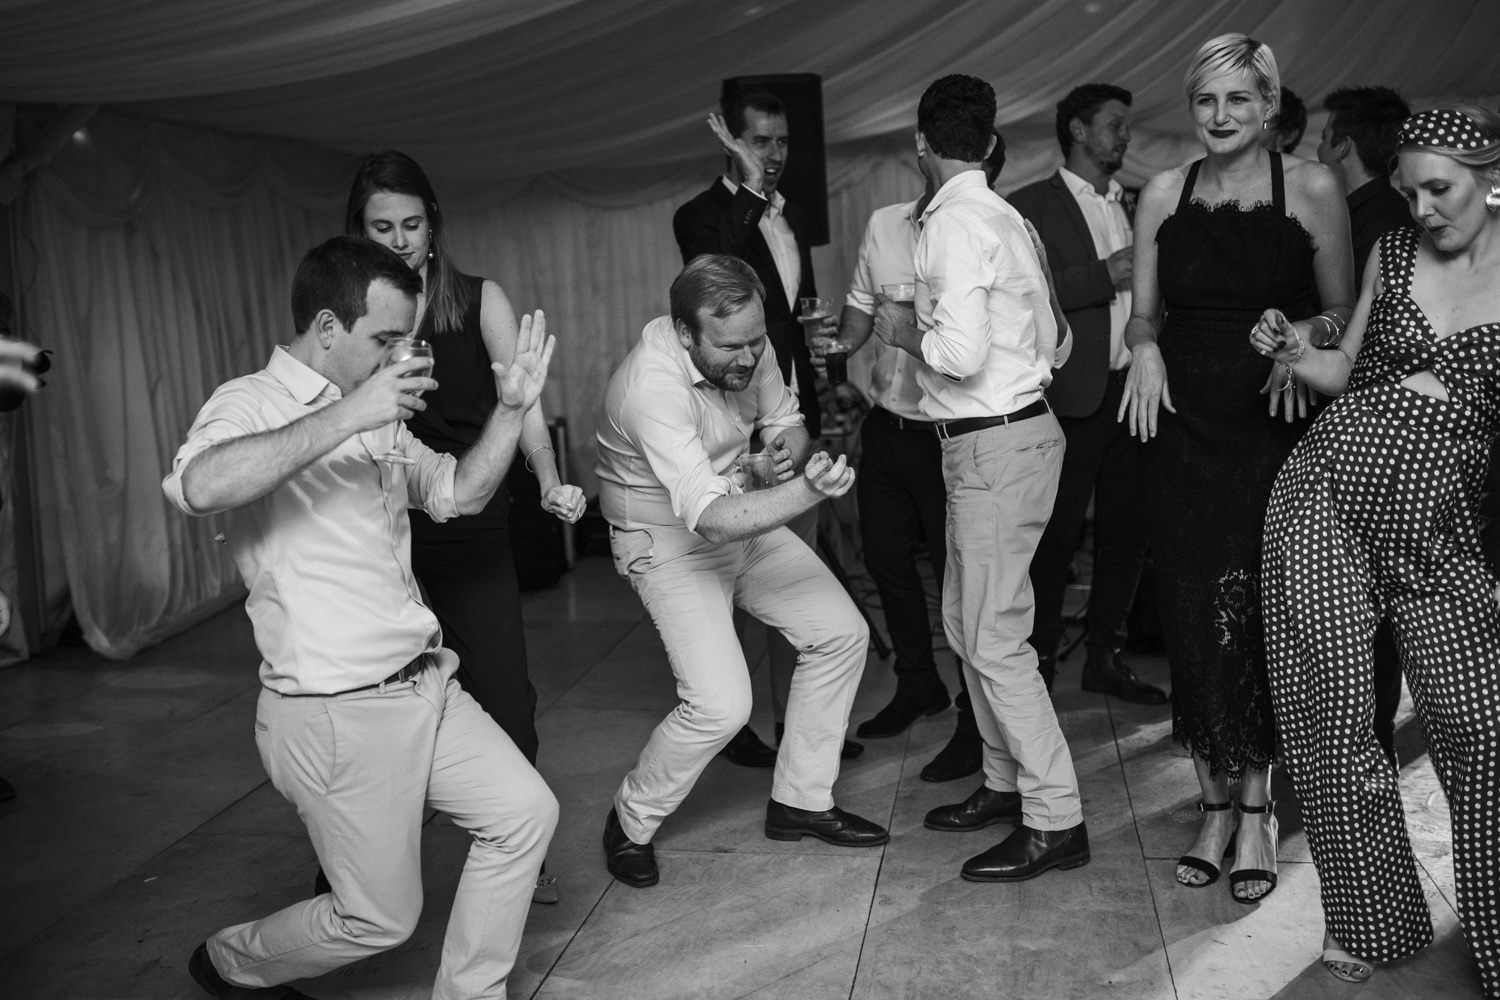 guests dancing during the wedding reception at Harvest Moon Scotland Weddings